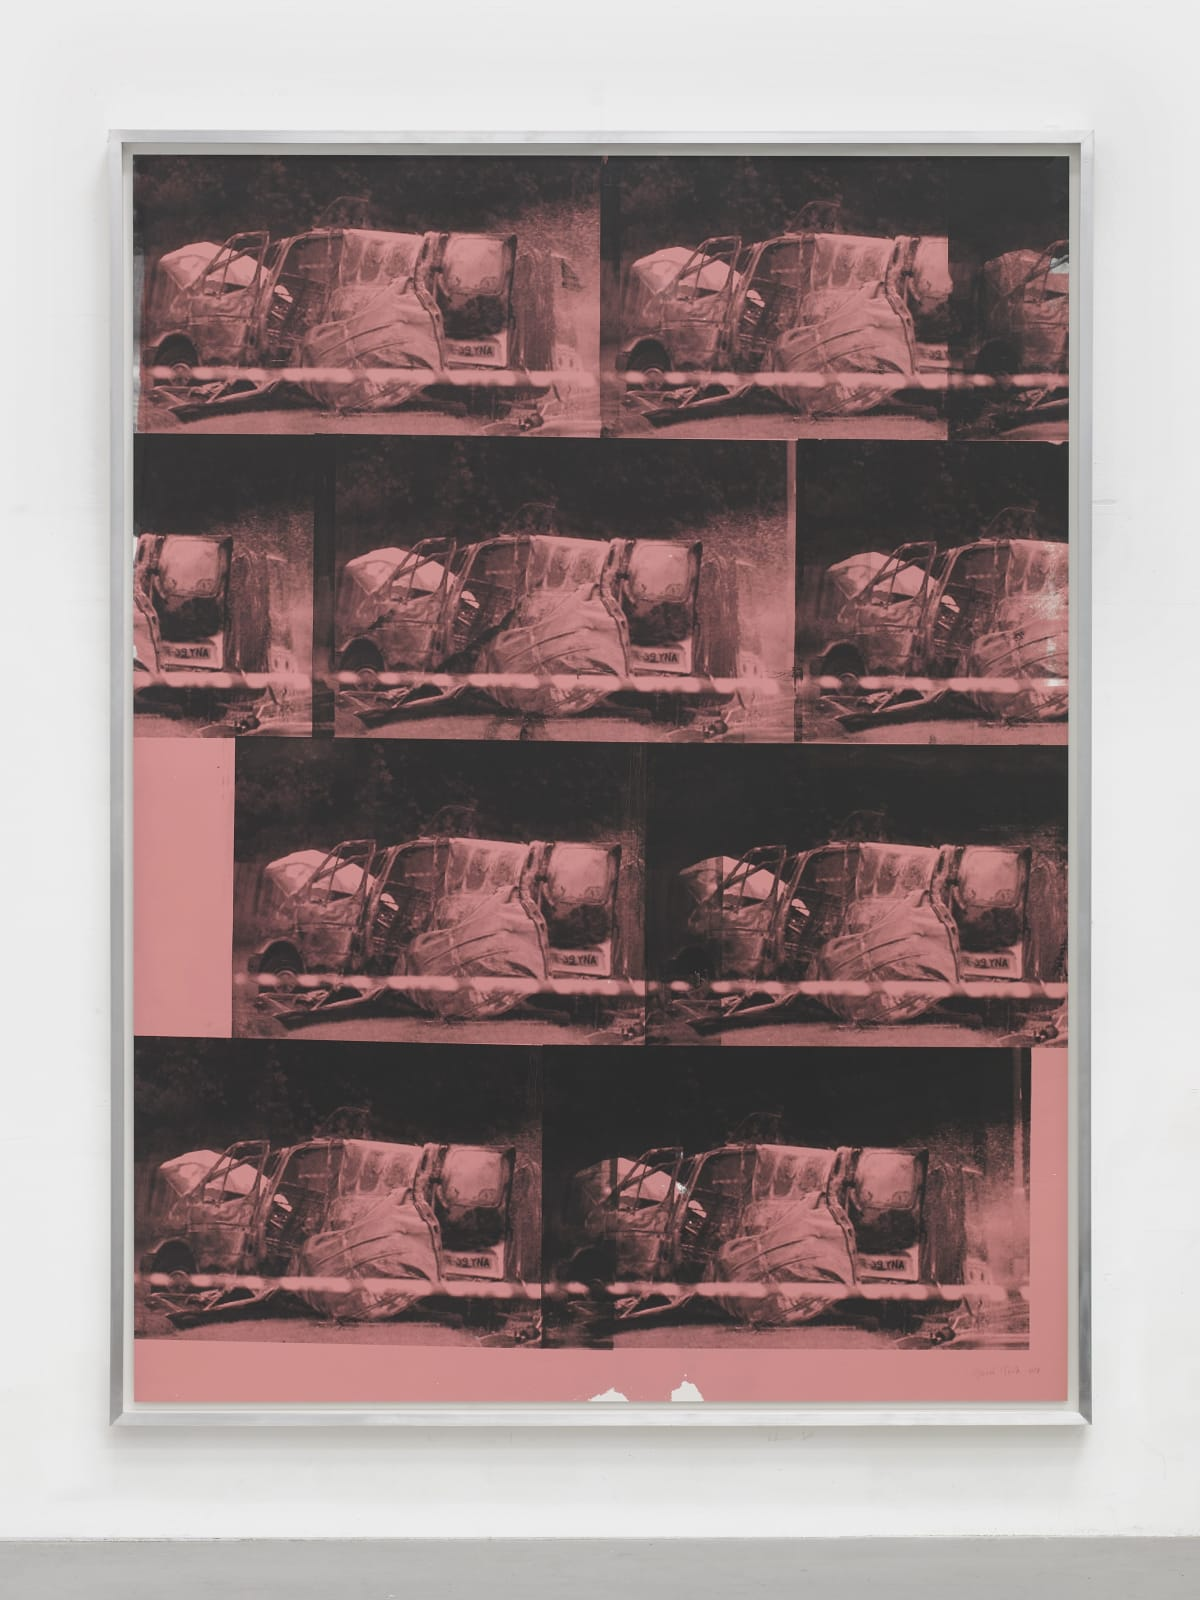 Gavin Turk Transit Disaster Black on Pink, 2018 Silkscreen on Heritage Rag paper. Unique Sheet size: 244 x 185 cm Framed size: 251 x 191 x 7.5 cm Signed and dated on the bottom right hand corner